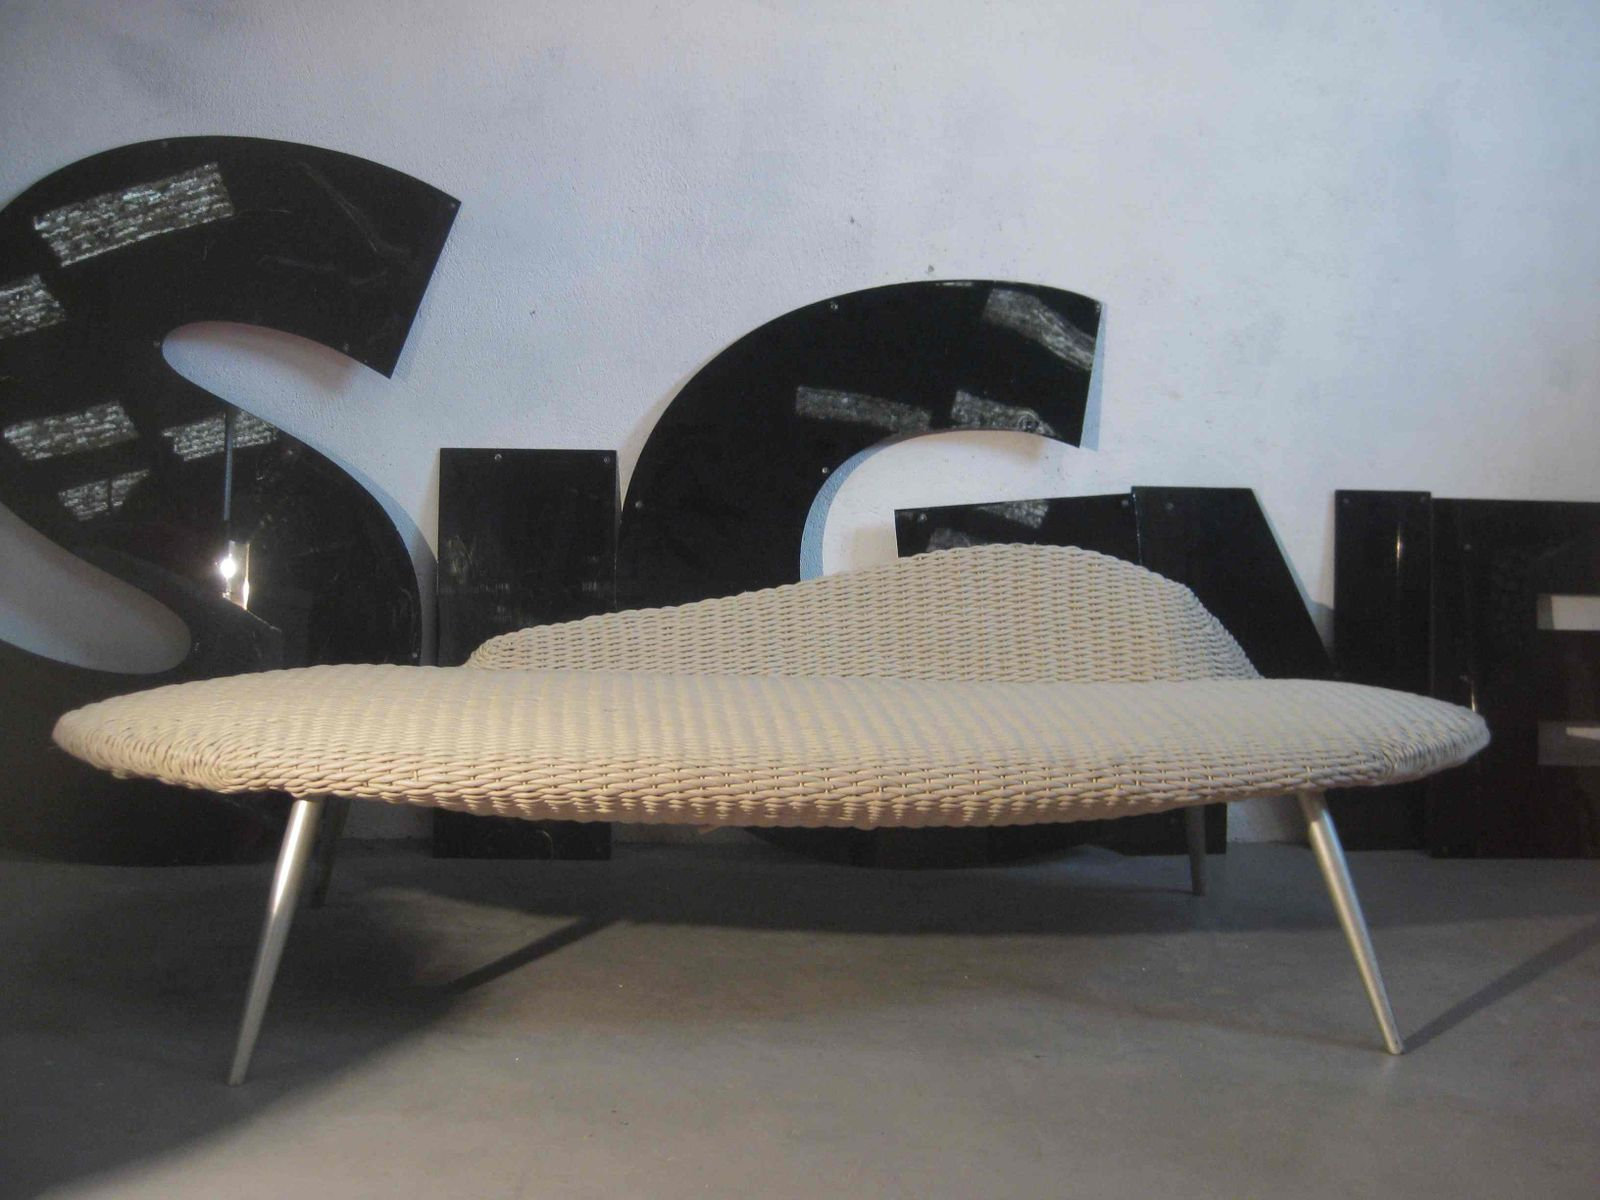 Braided leather chaise longue 1980s for sale at pamono for Chaise longue sale